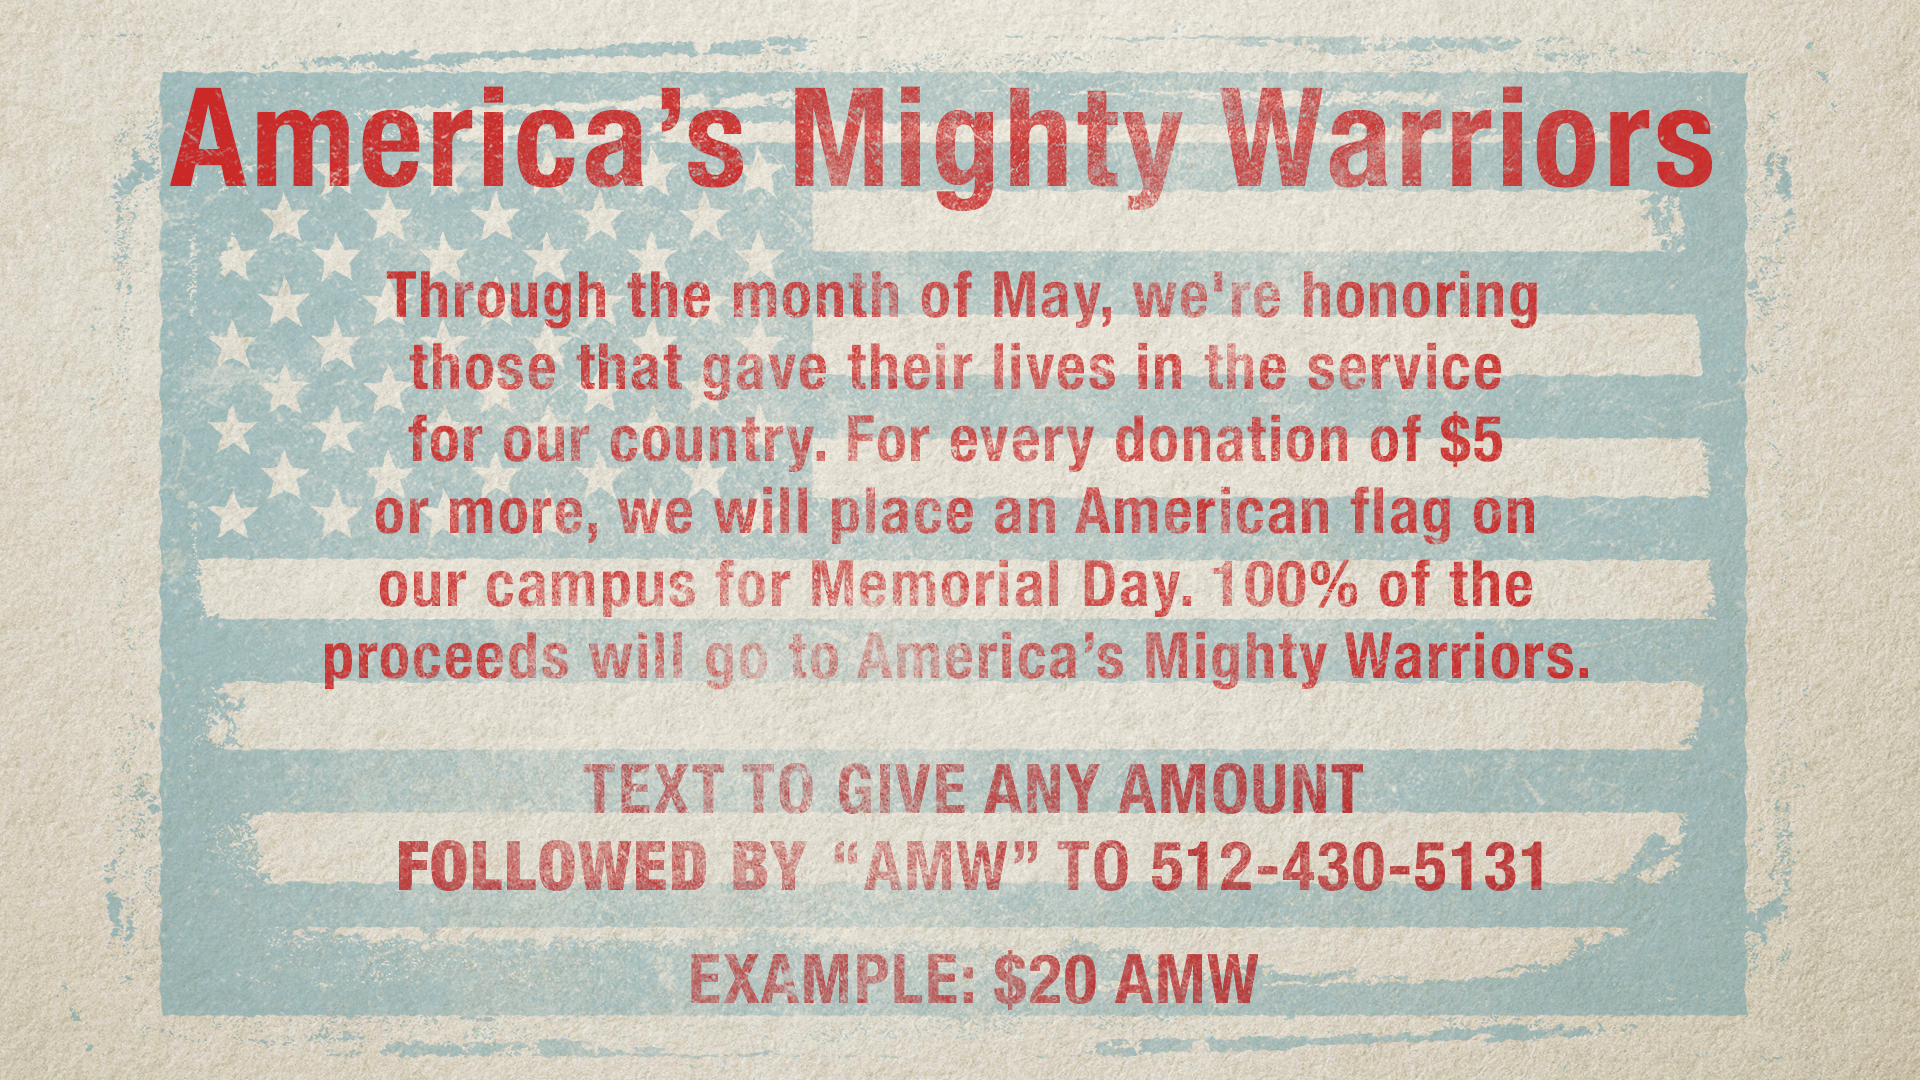 America's Mighty Warriors_give.jpg